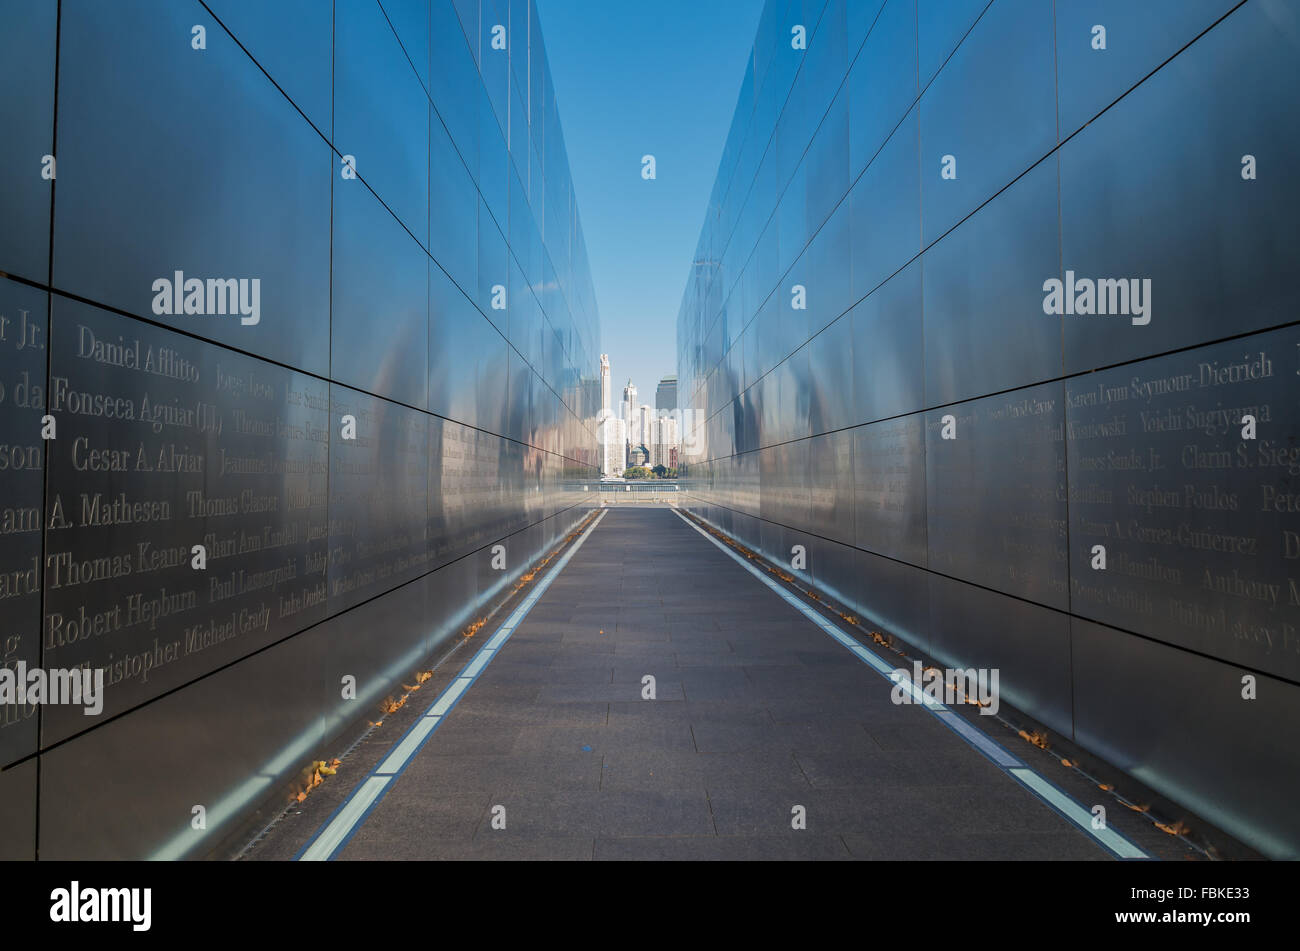 Empty Sky memorial to September 11th; situated in Liberty State Park in Jersey City and looking across to NYC. - Stock Image